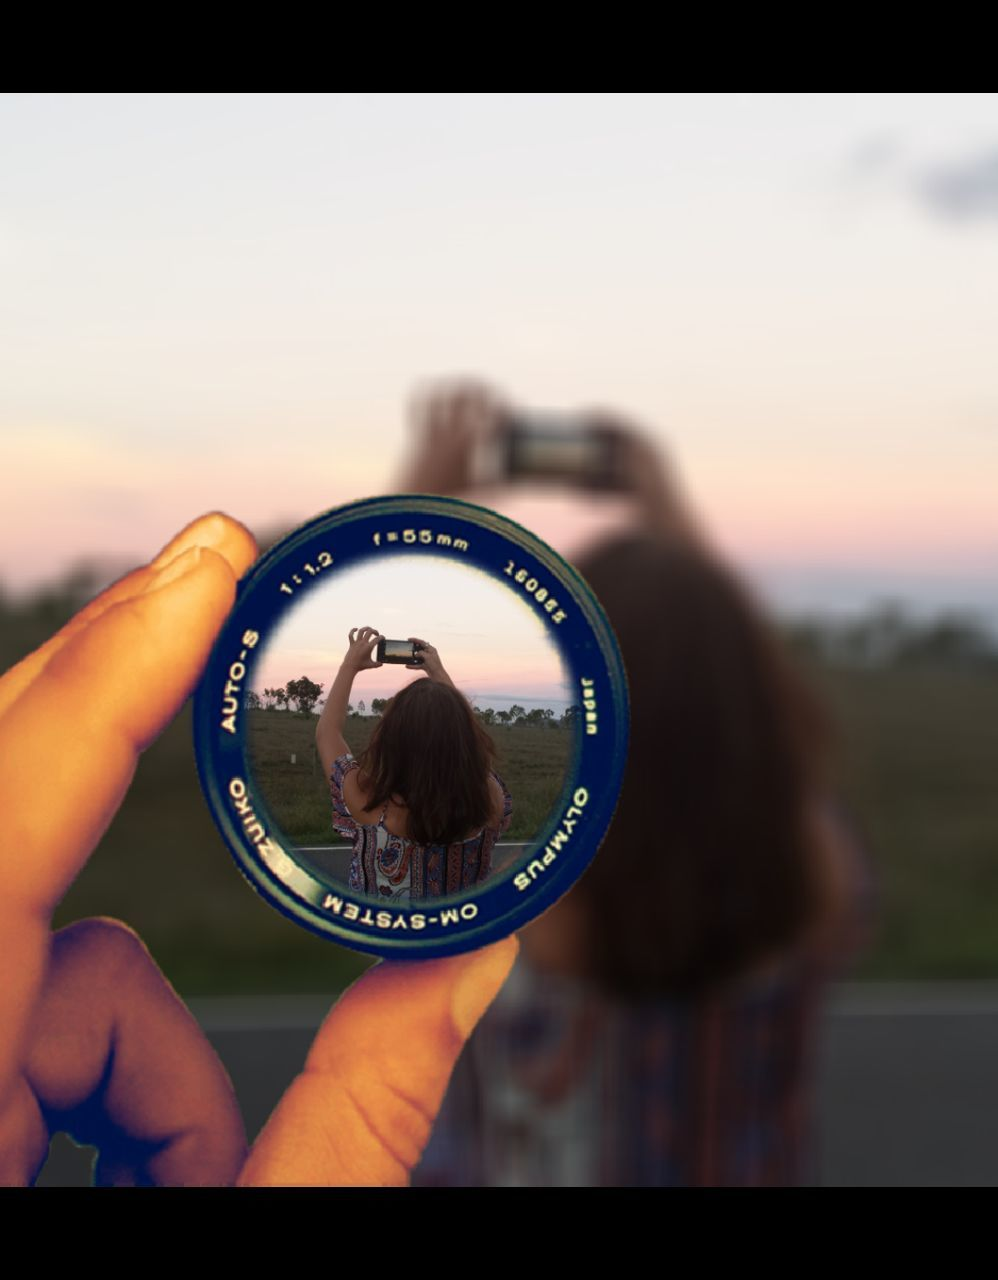 real people, photographing, focus on foreground, holding, human hand, photography themes, sunset, outdoors, two people, close-up, sky, day, camera - photographic equipment, human body part, nature, young adult, people